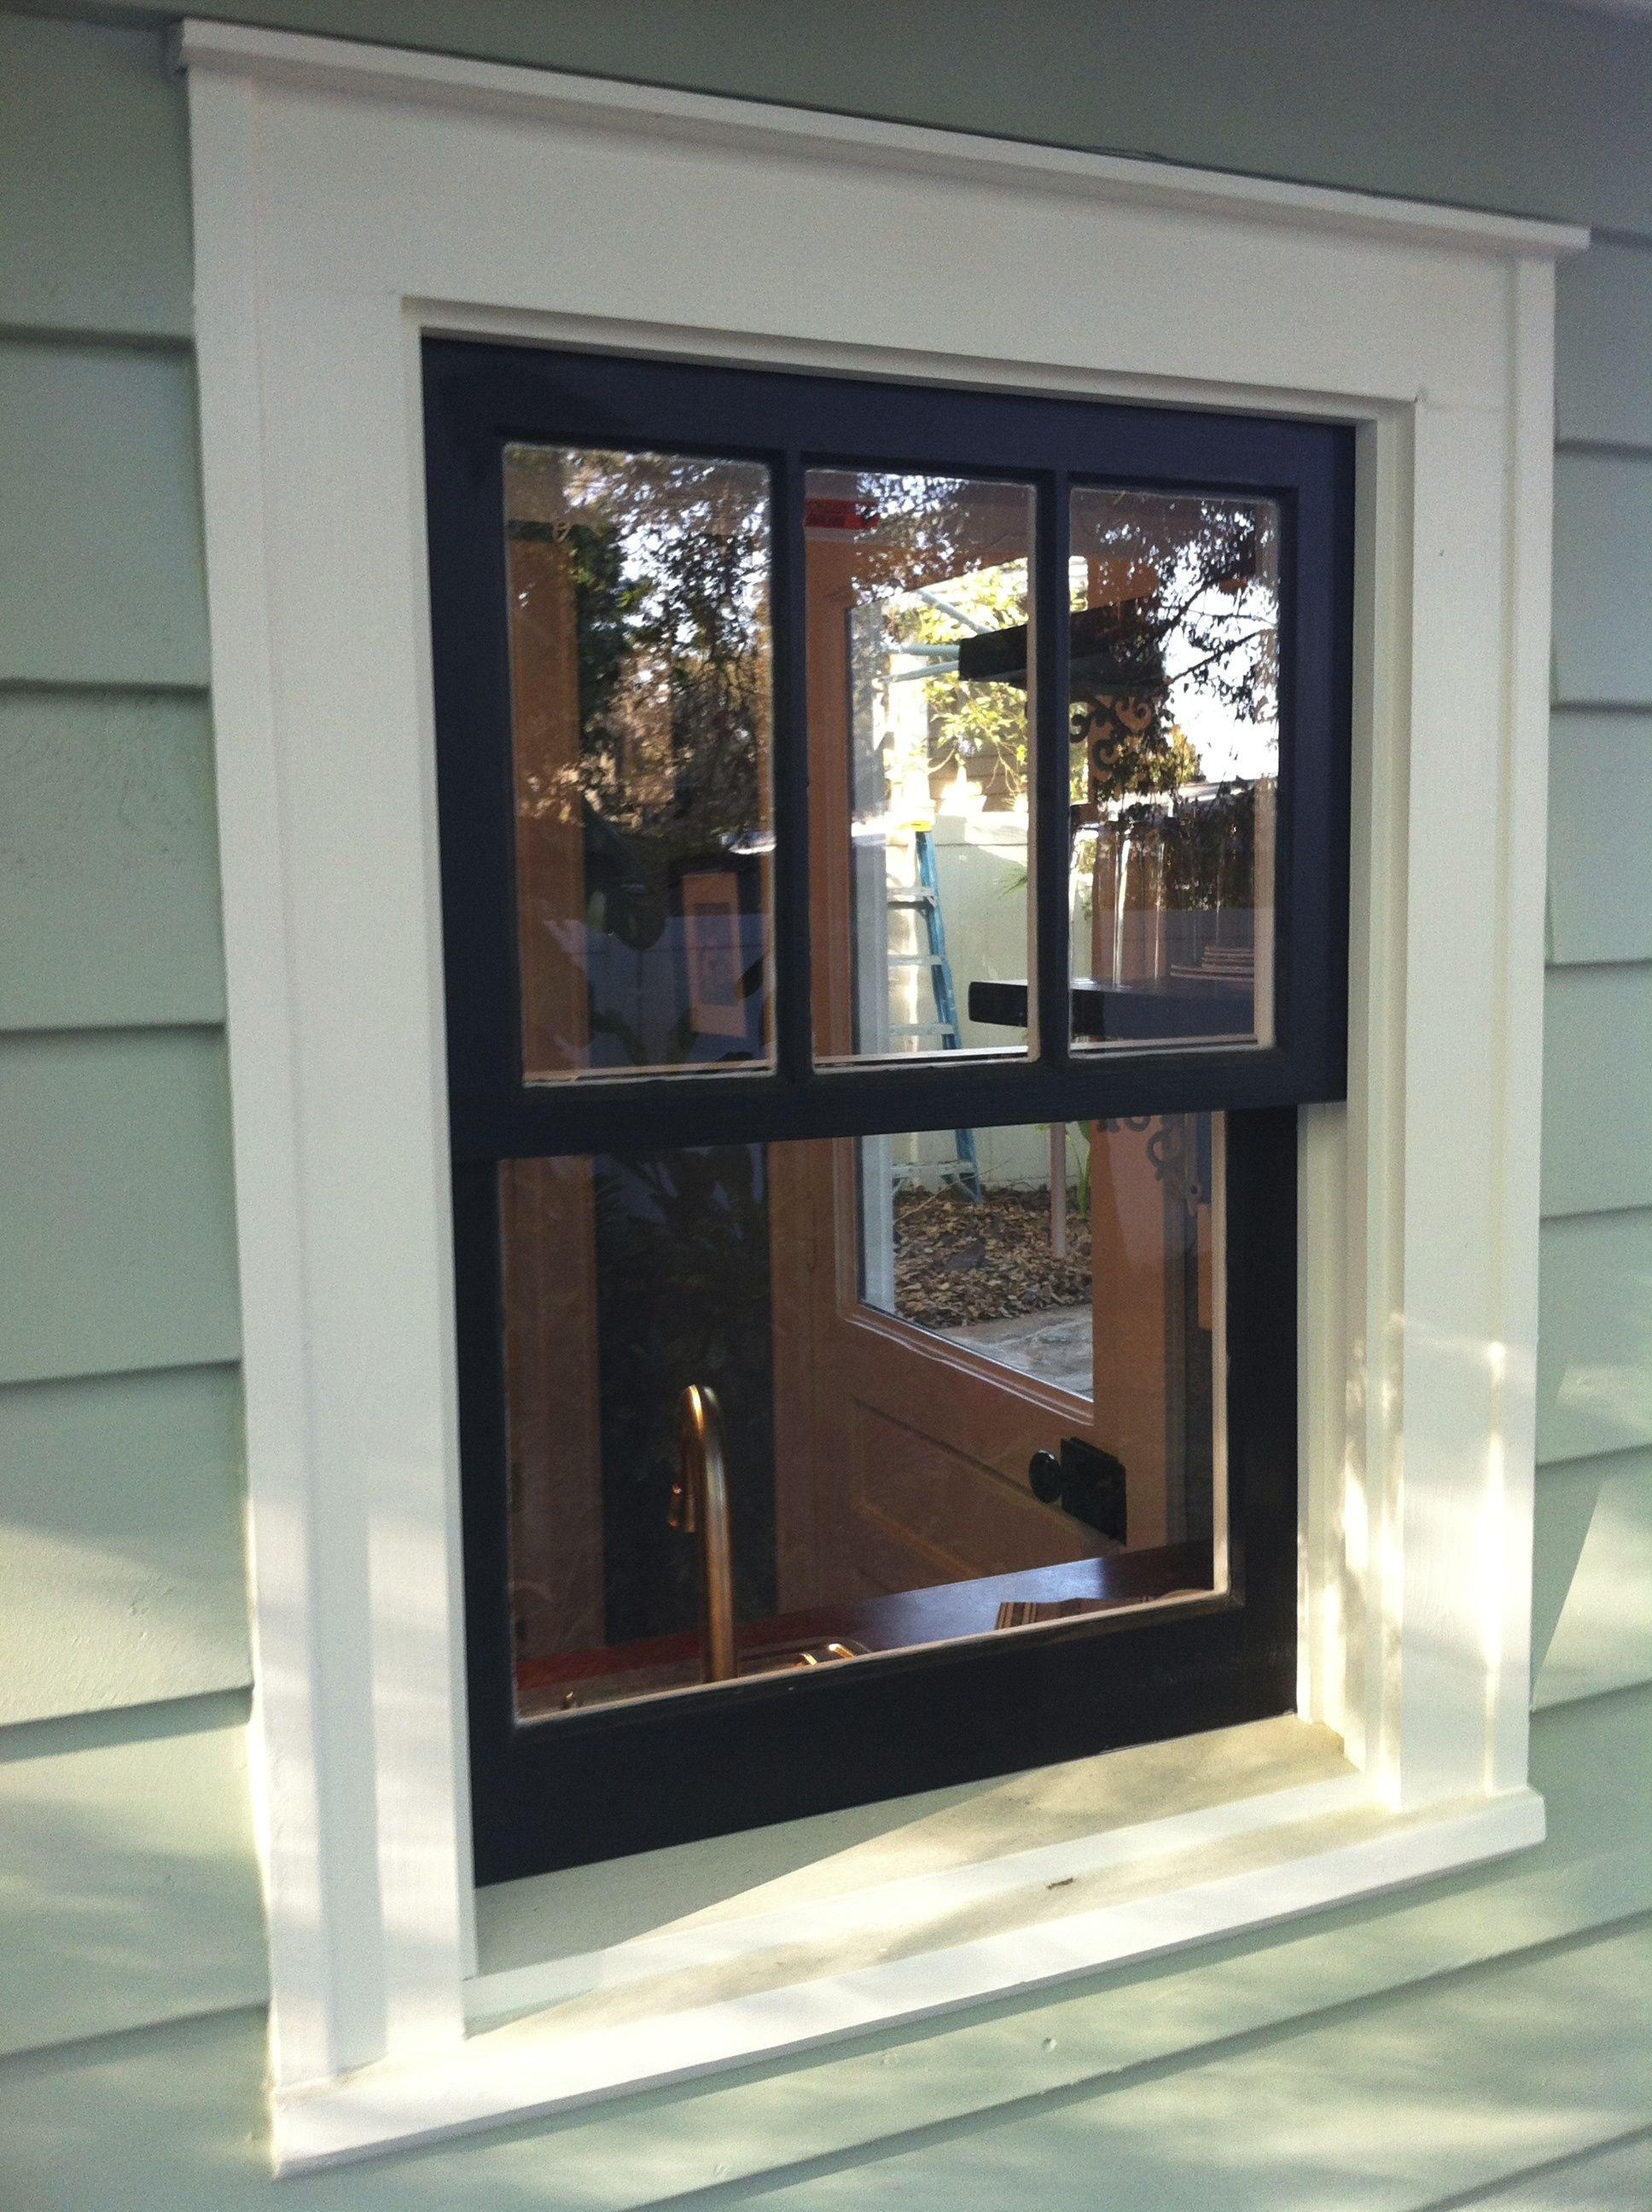 Historic Wood Window How To Repair Old Windows Tutorials Pinterest Window Woods And